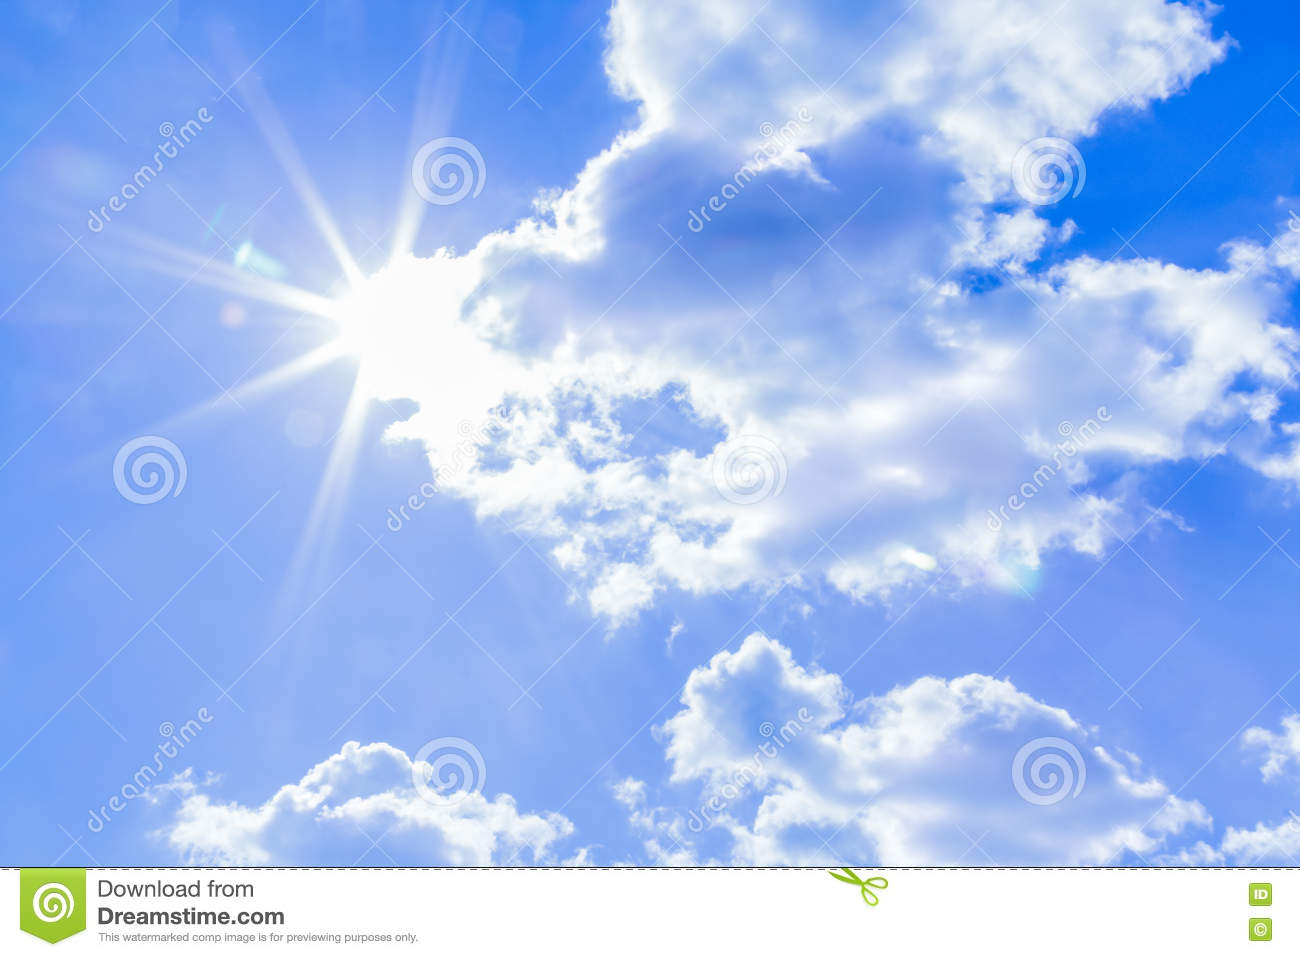 Natural sky background and radiating rays in a blue sky with clouds. That suitable for background, backdrop, wallpaper, display an